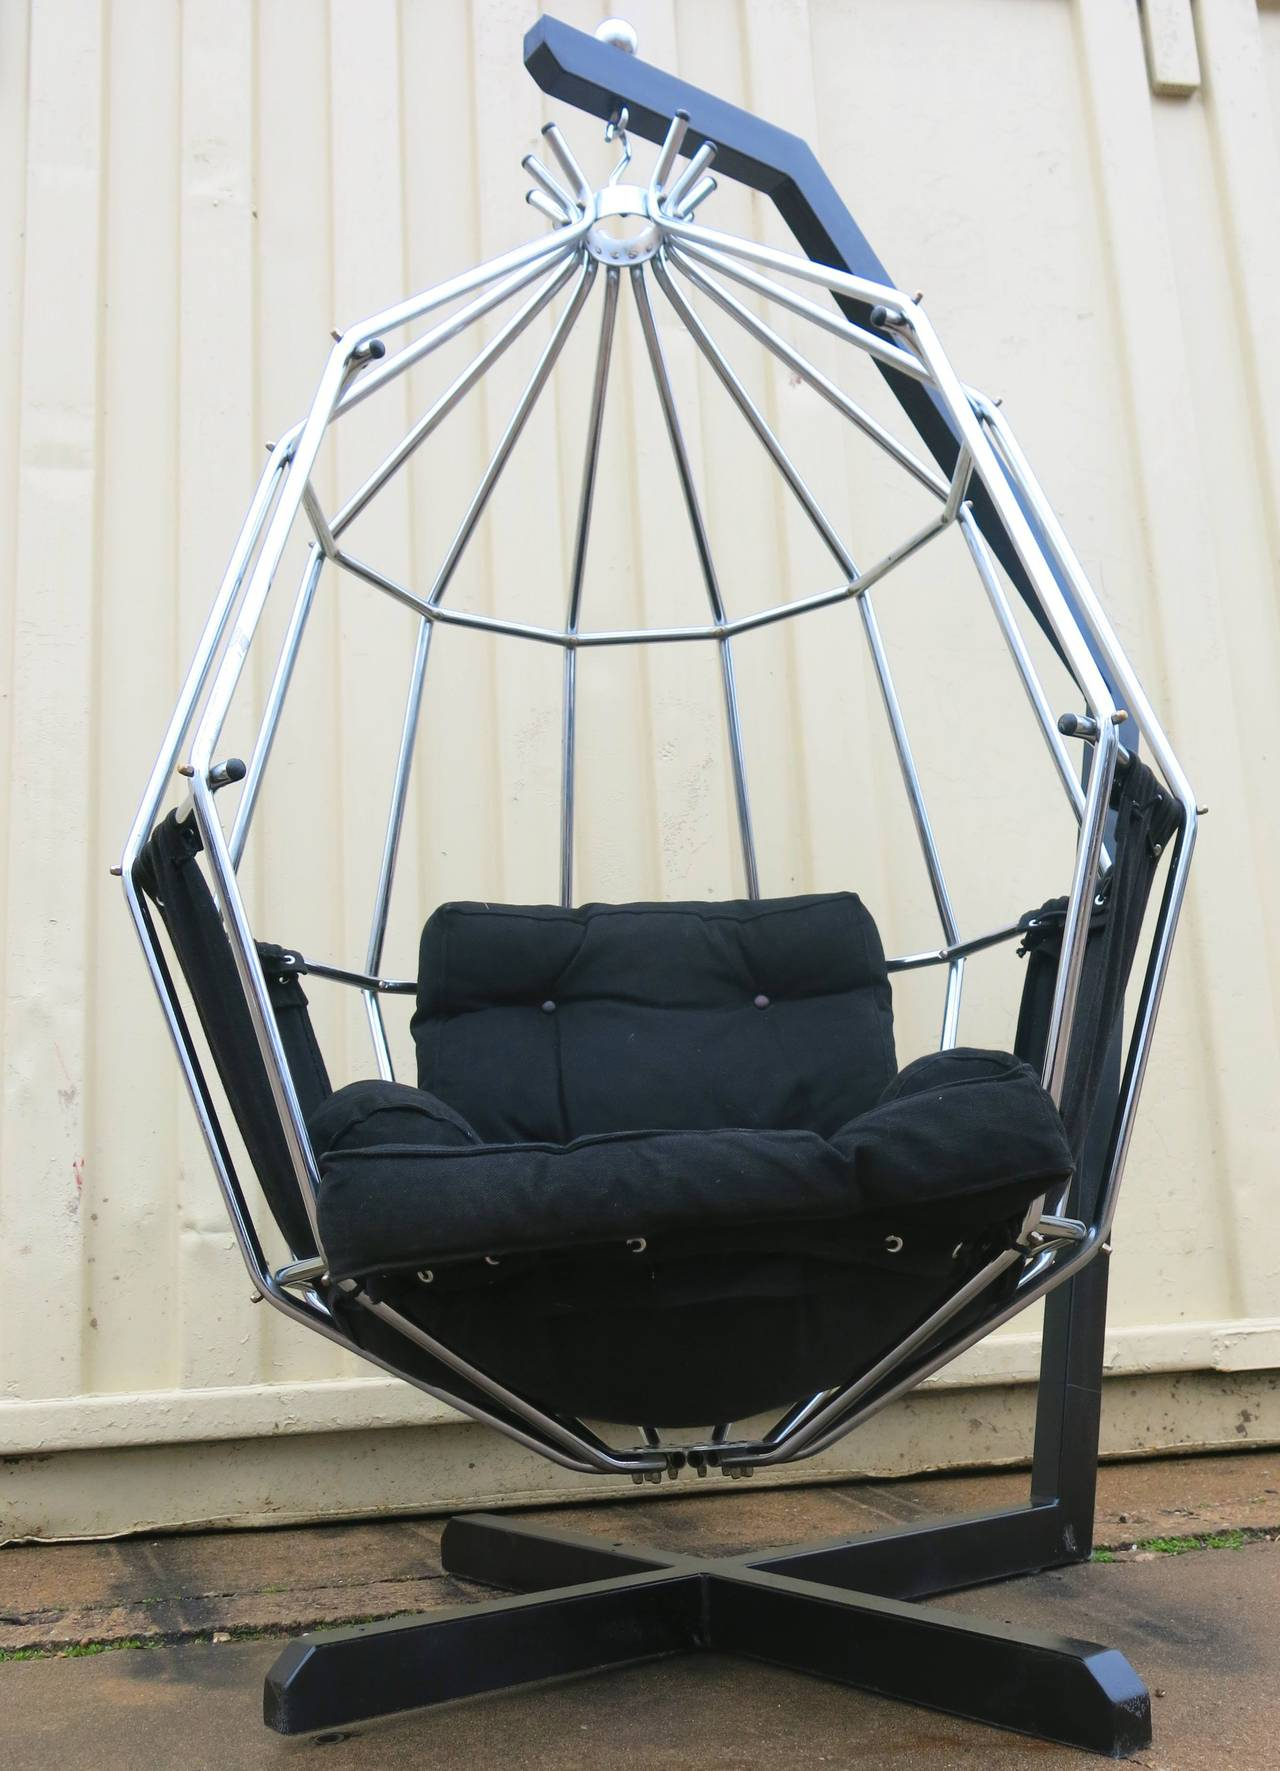 High Quality Ib Arberg Hanging Birdcage Or Parrot Chair, Circa 1970 At 1stdibs